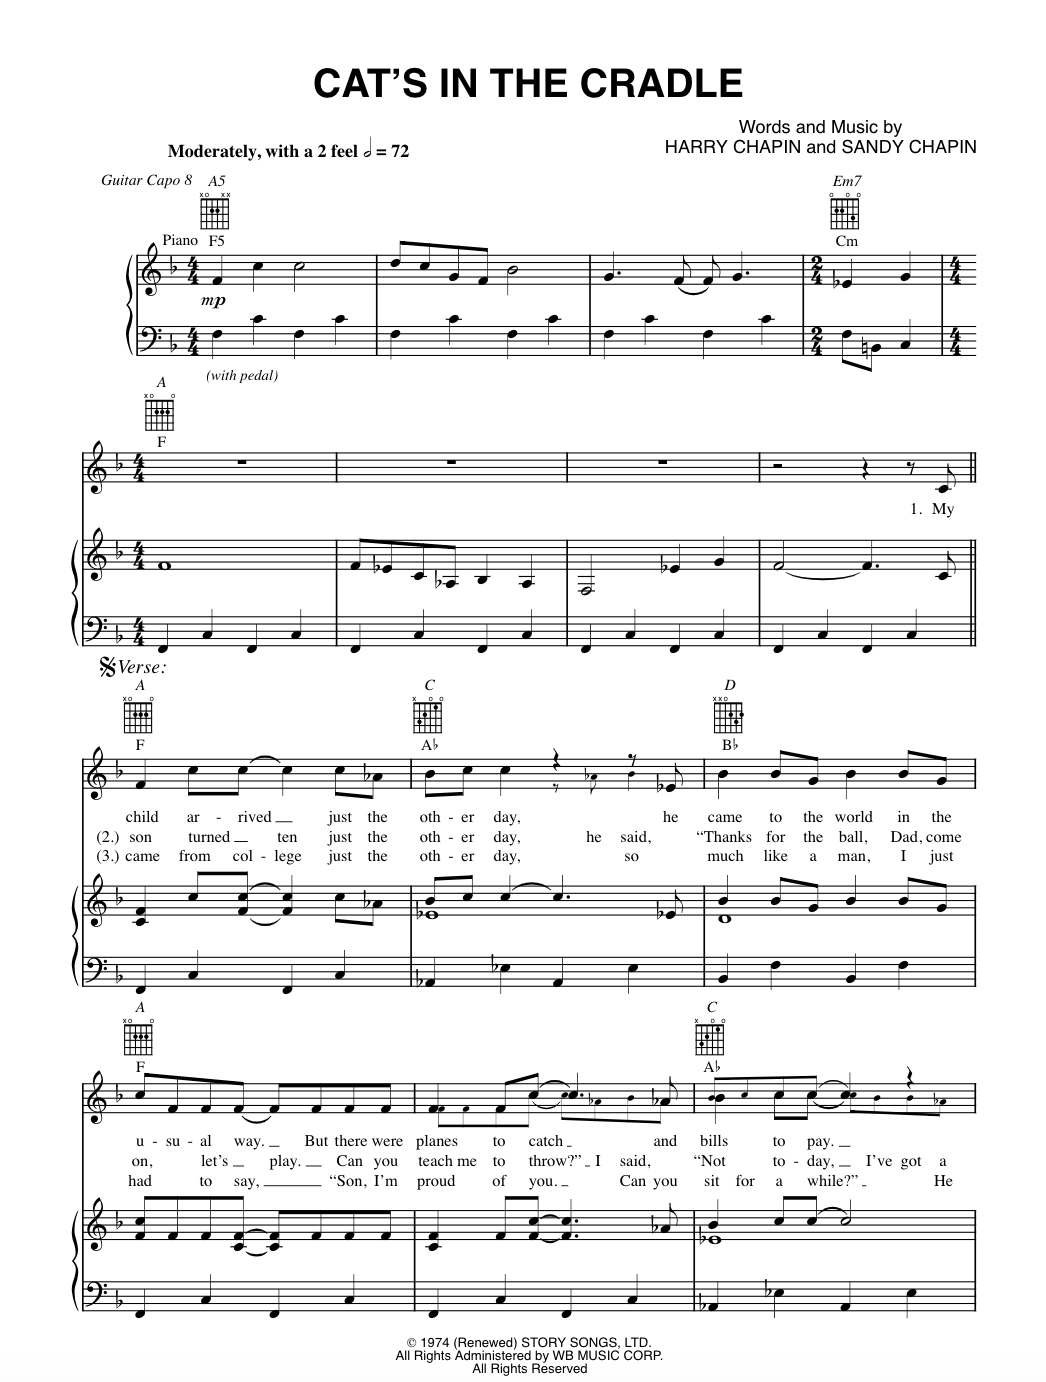 Cat's in the Cradle by Harry Chapin sheetmusic arranged